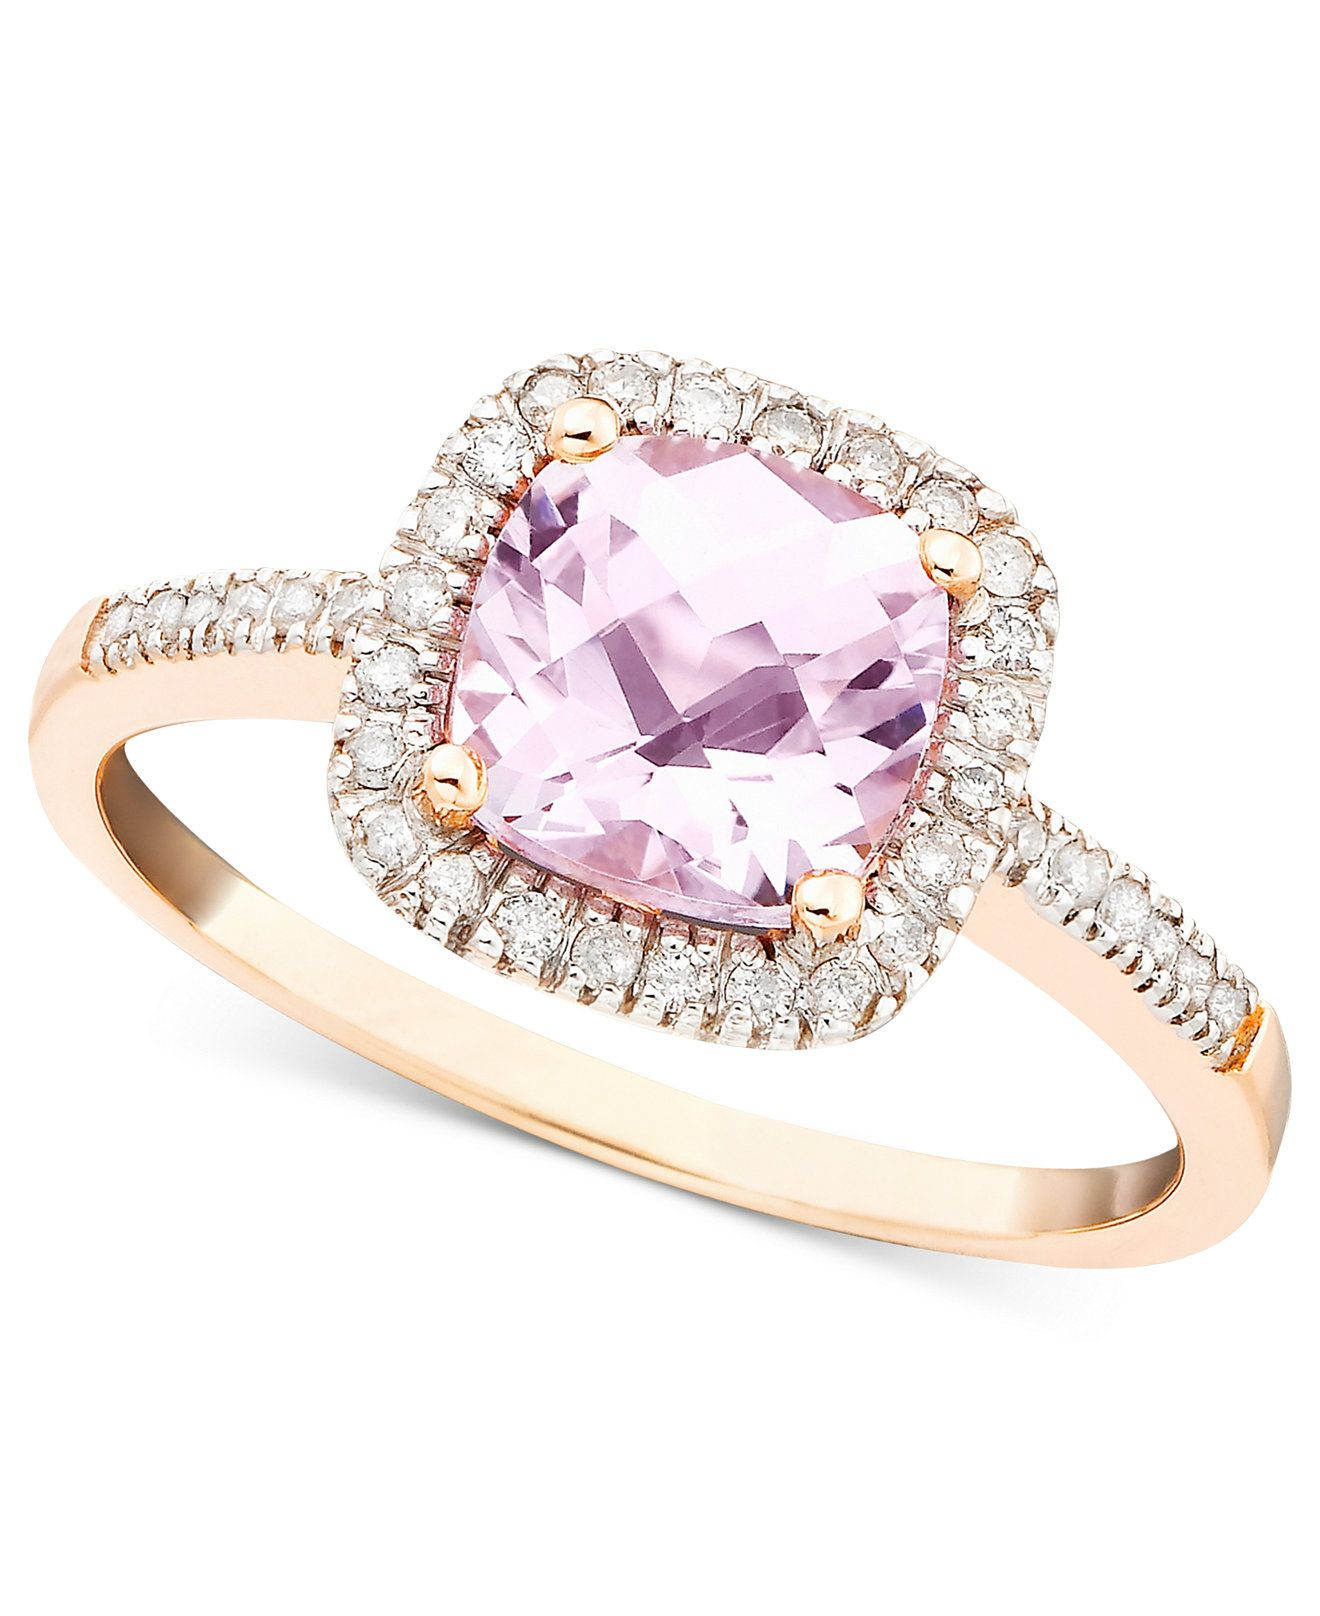 Pink Amethyst 1 1 3 ct t w and Diamond 1 5 ct t w Ring in